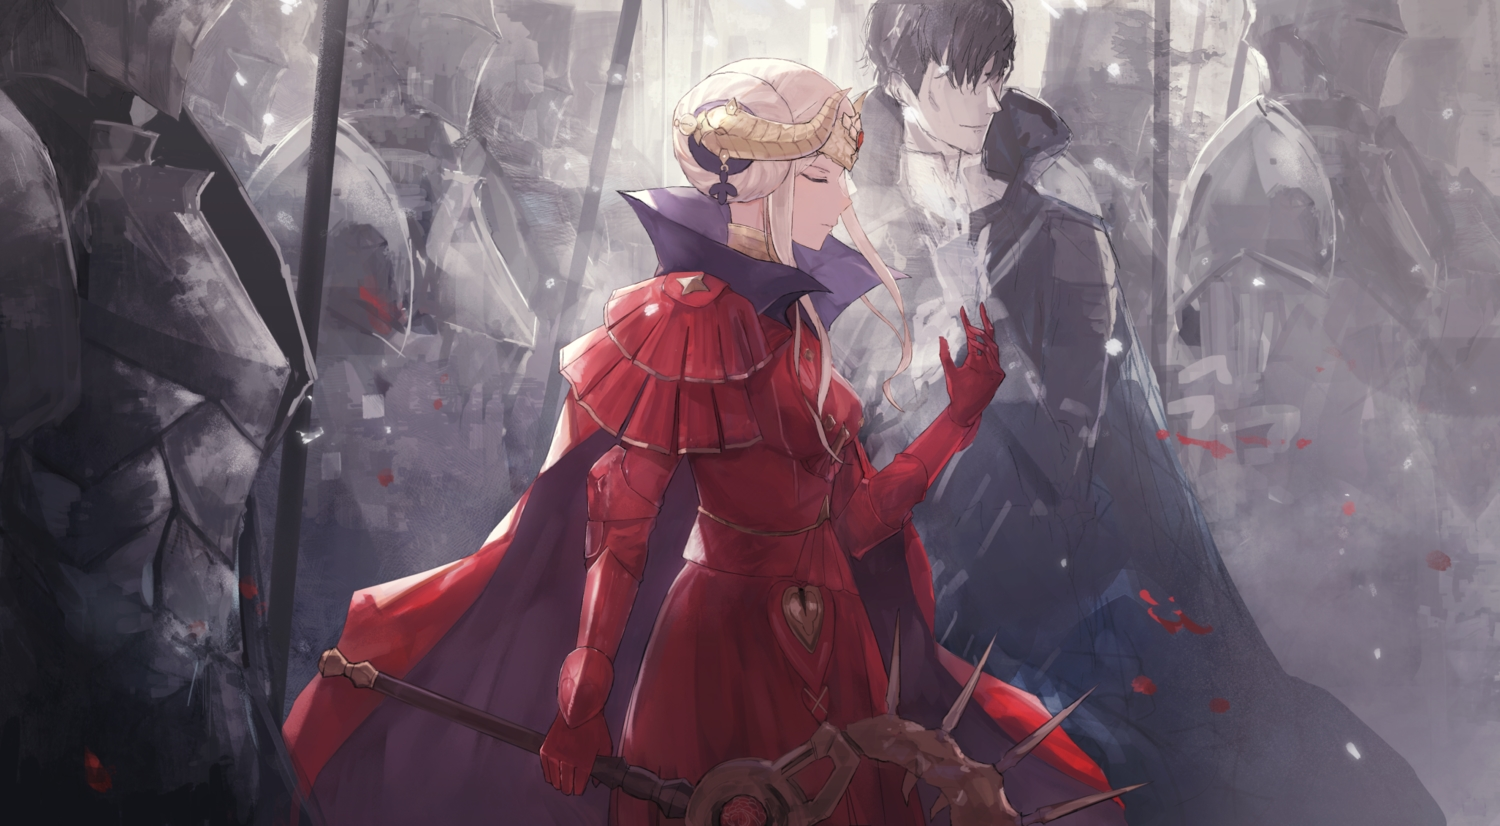 armor black_hair blonde_hair cape edelgard_von_hresvelg fire_emblem horns male short_hair thkani weapon